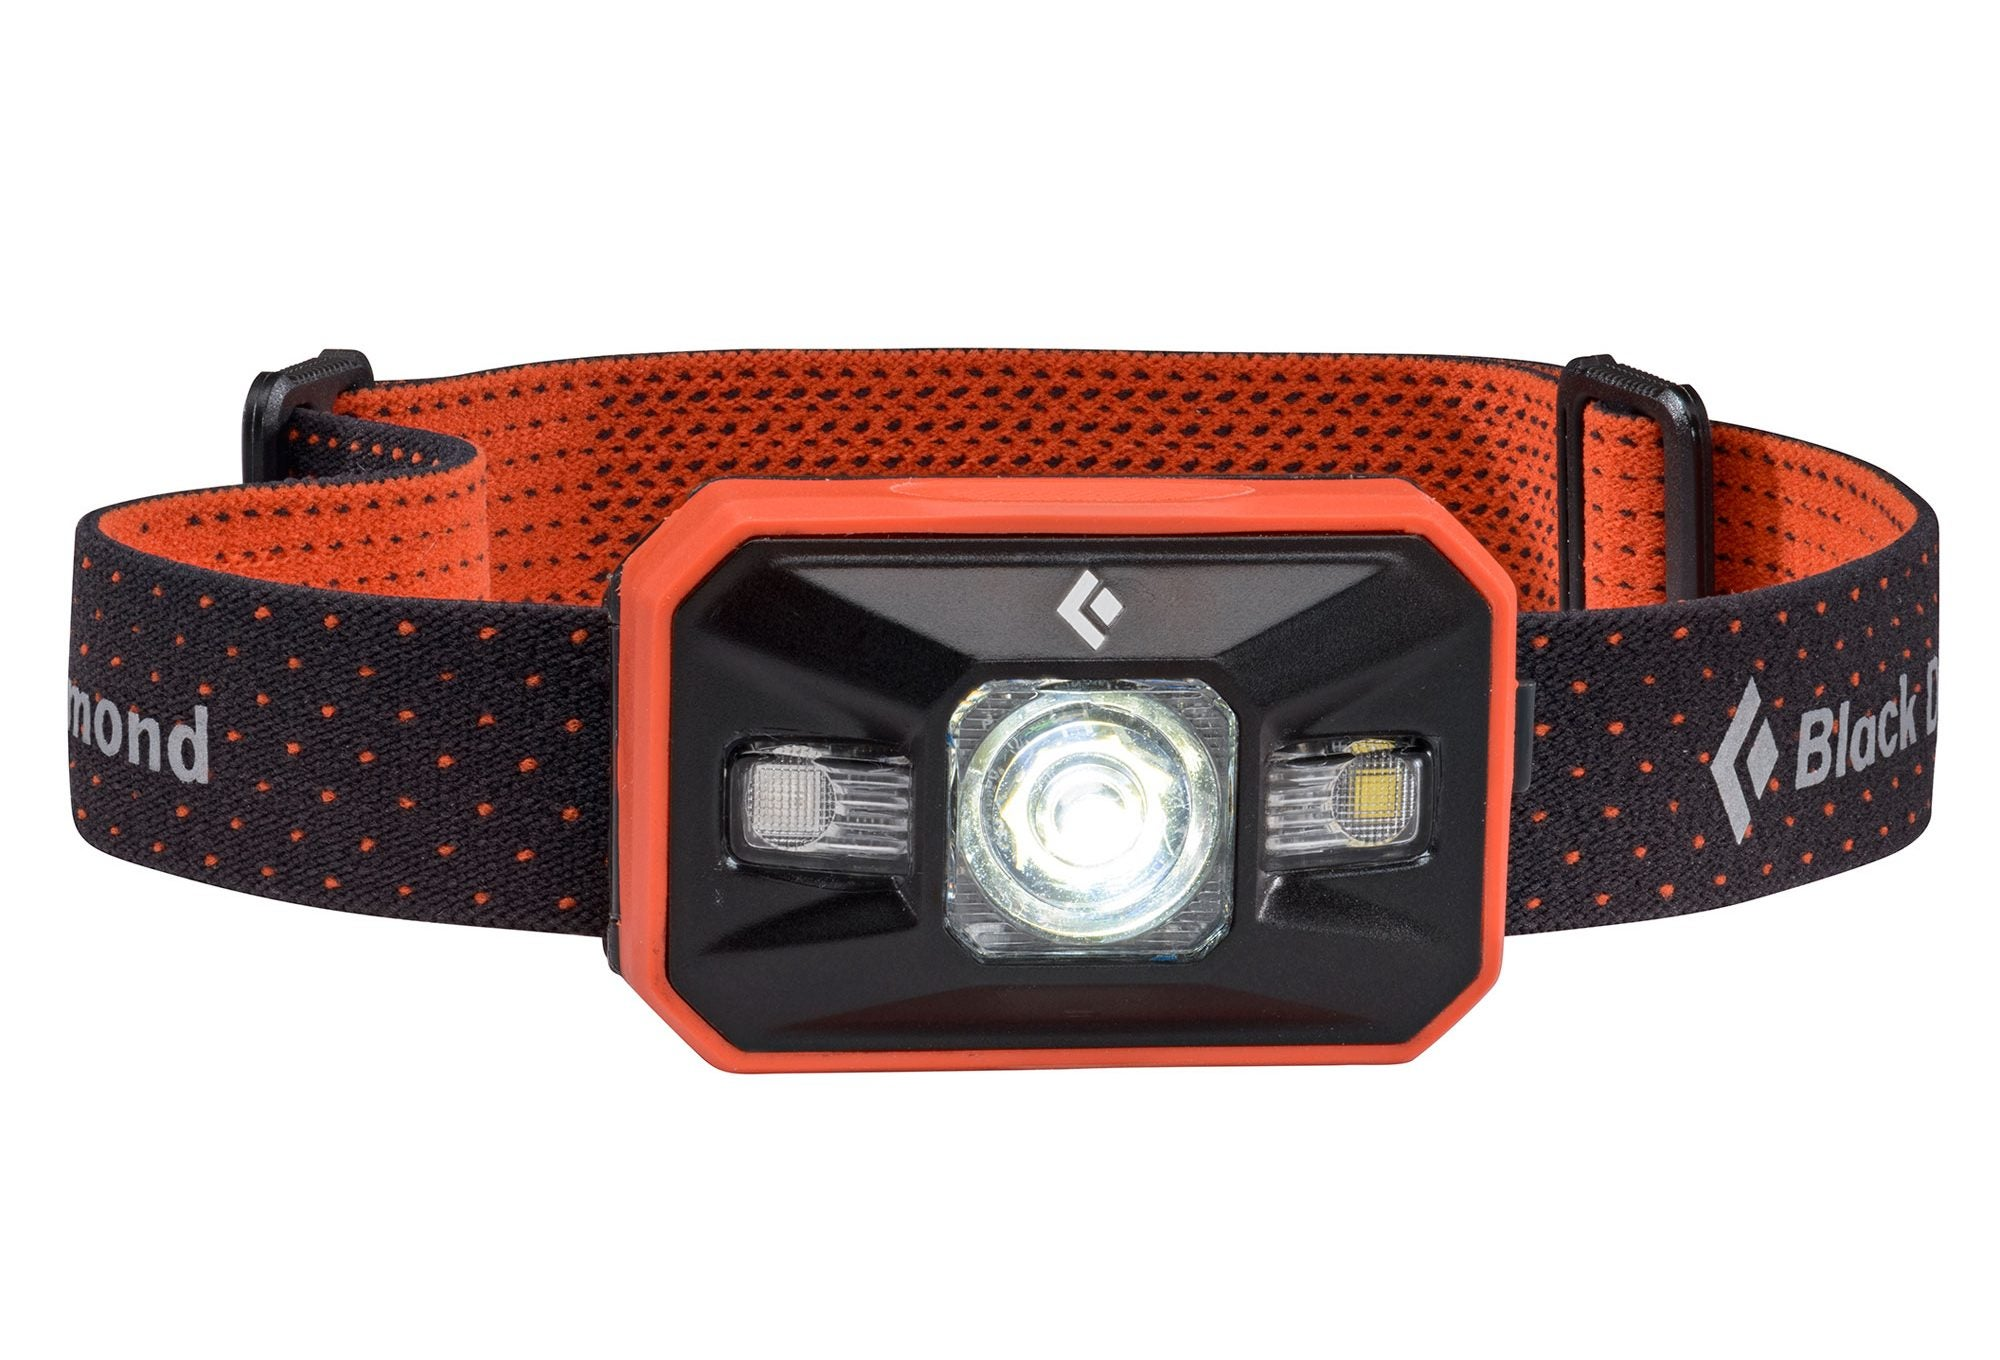 black diamond headlamp in red and black